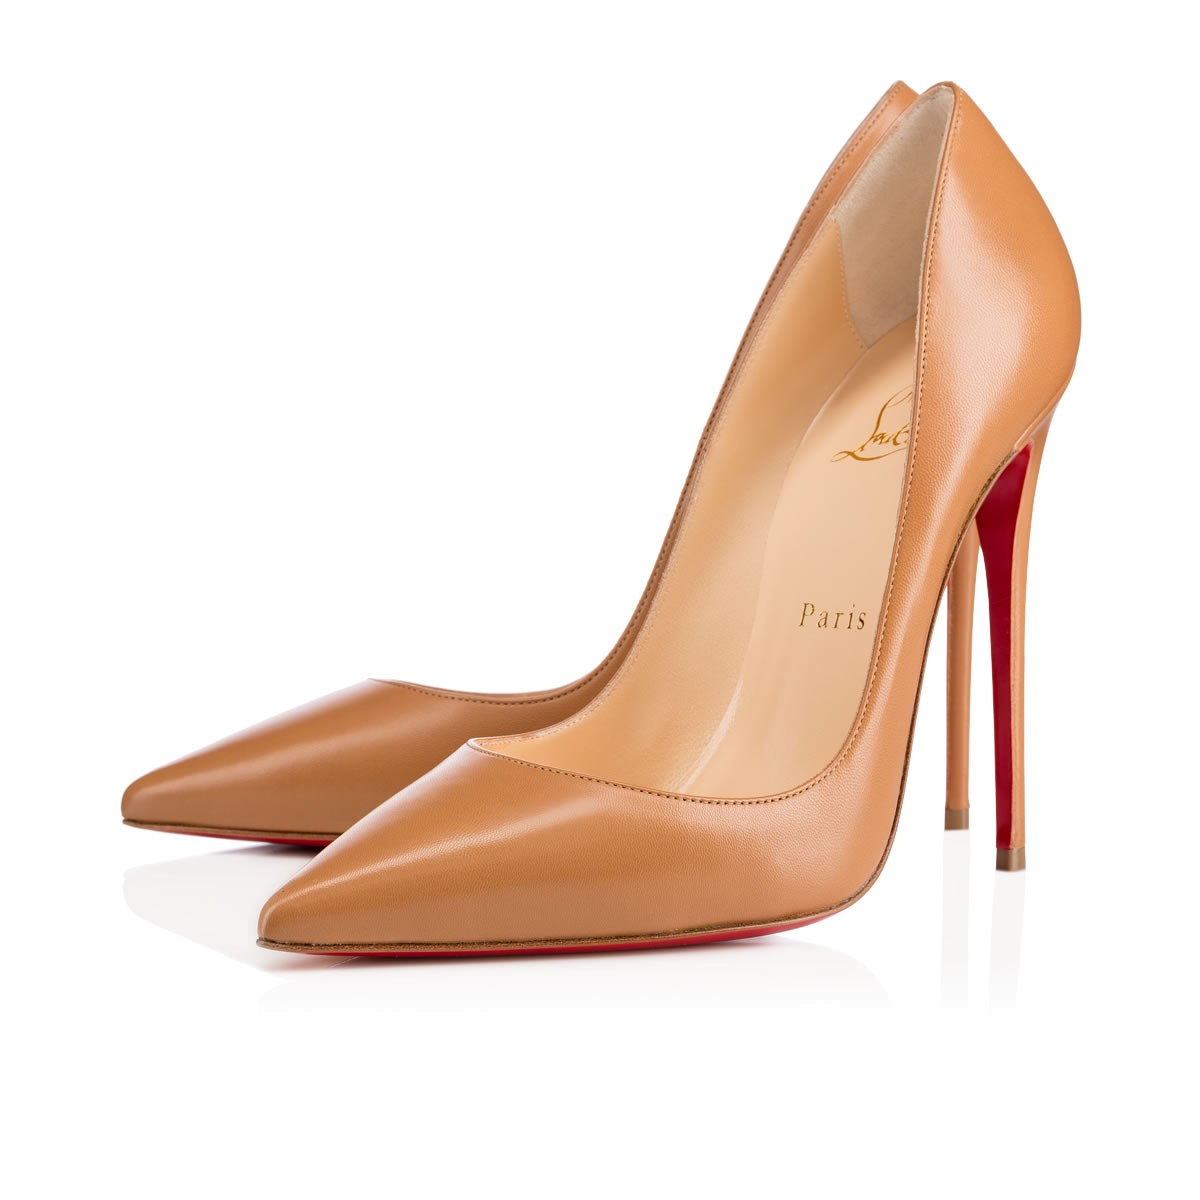 CHRISTIAN LOUBOUTIN So Kate 120Mm Nats Nude Leather at Christian Louboutin